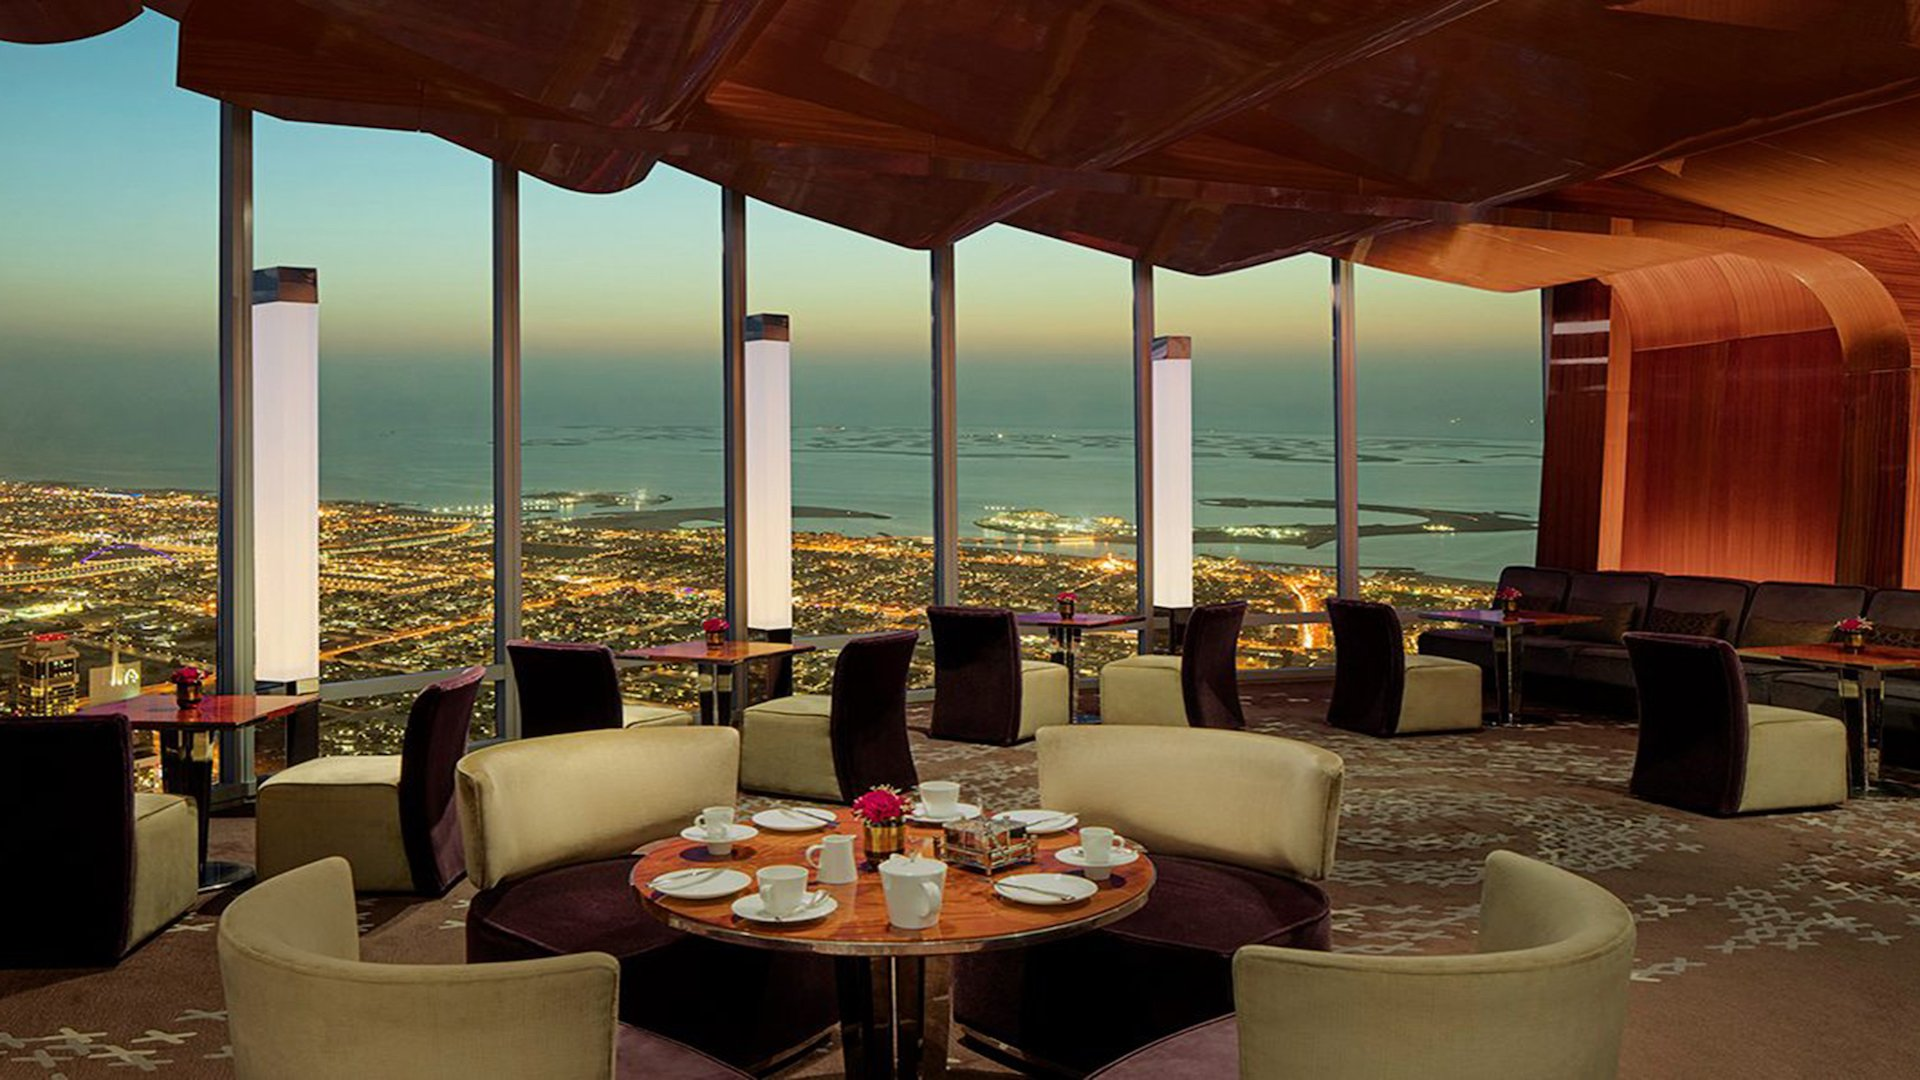 Dubai's Highest, and Most Expensive, Steak